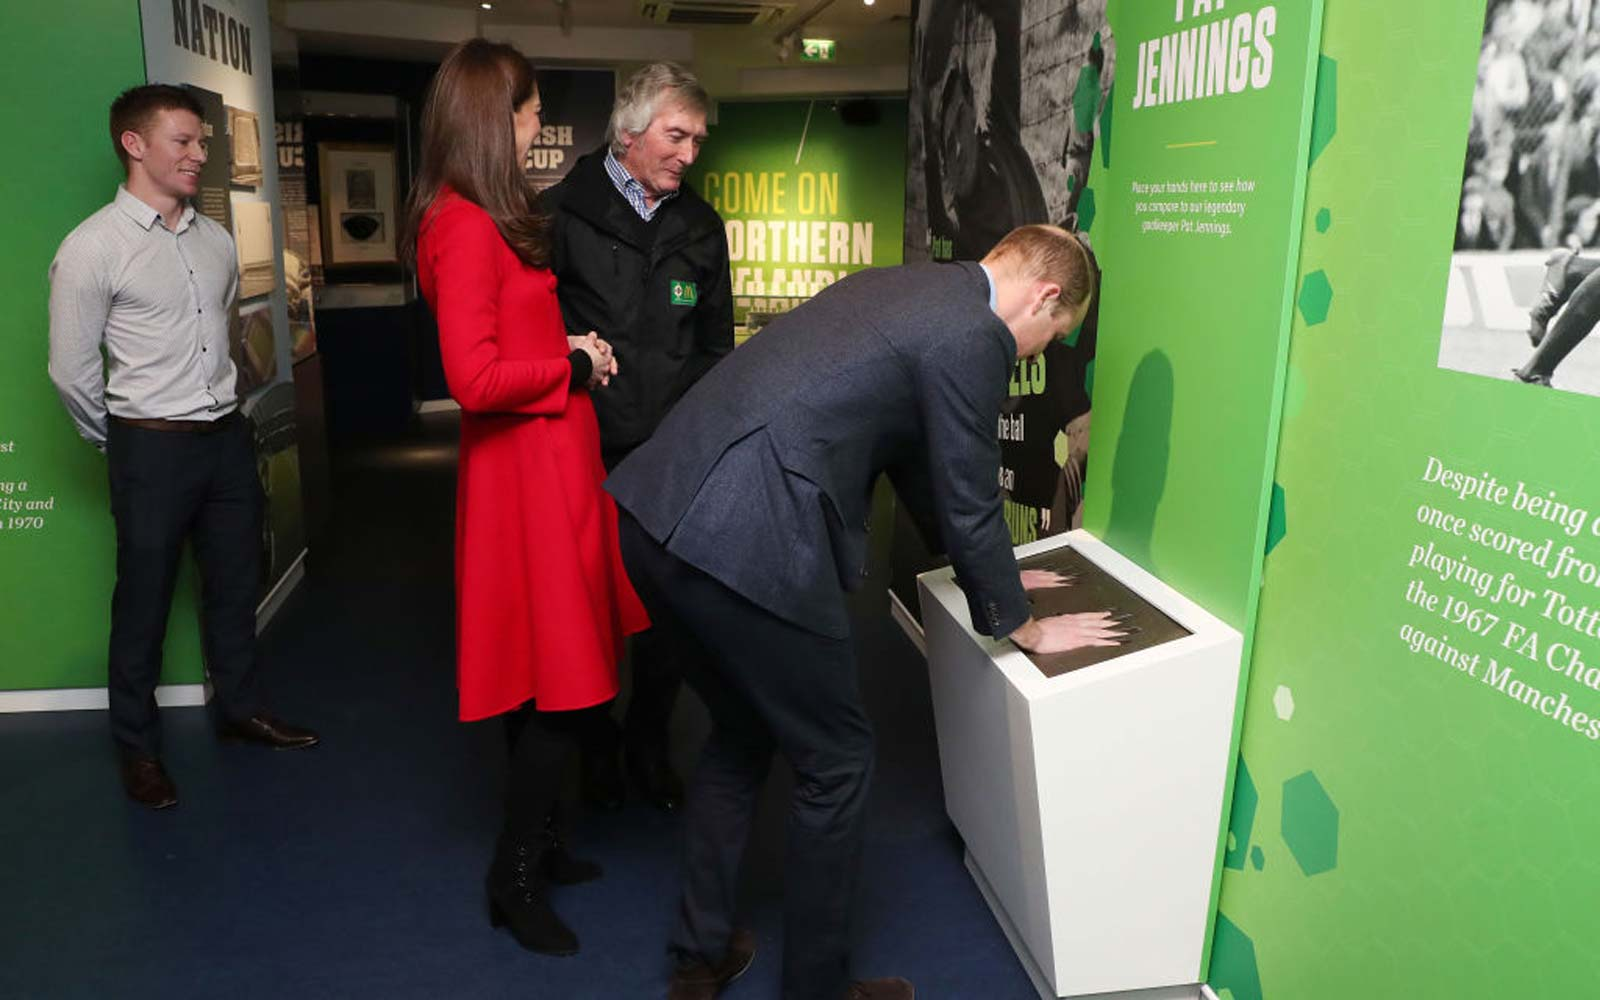 Prince William Duke of Cambridge and Catherine, Duchess of Cambridge, meet former Northern Ireland goalkeeper Pat Jennings during a visit the National Stadium in Belfast, home of the Irish Football Association